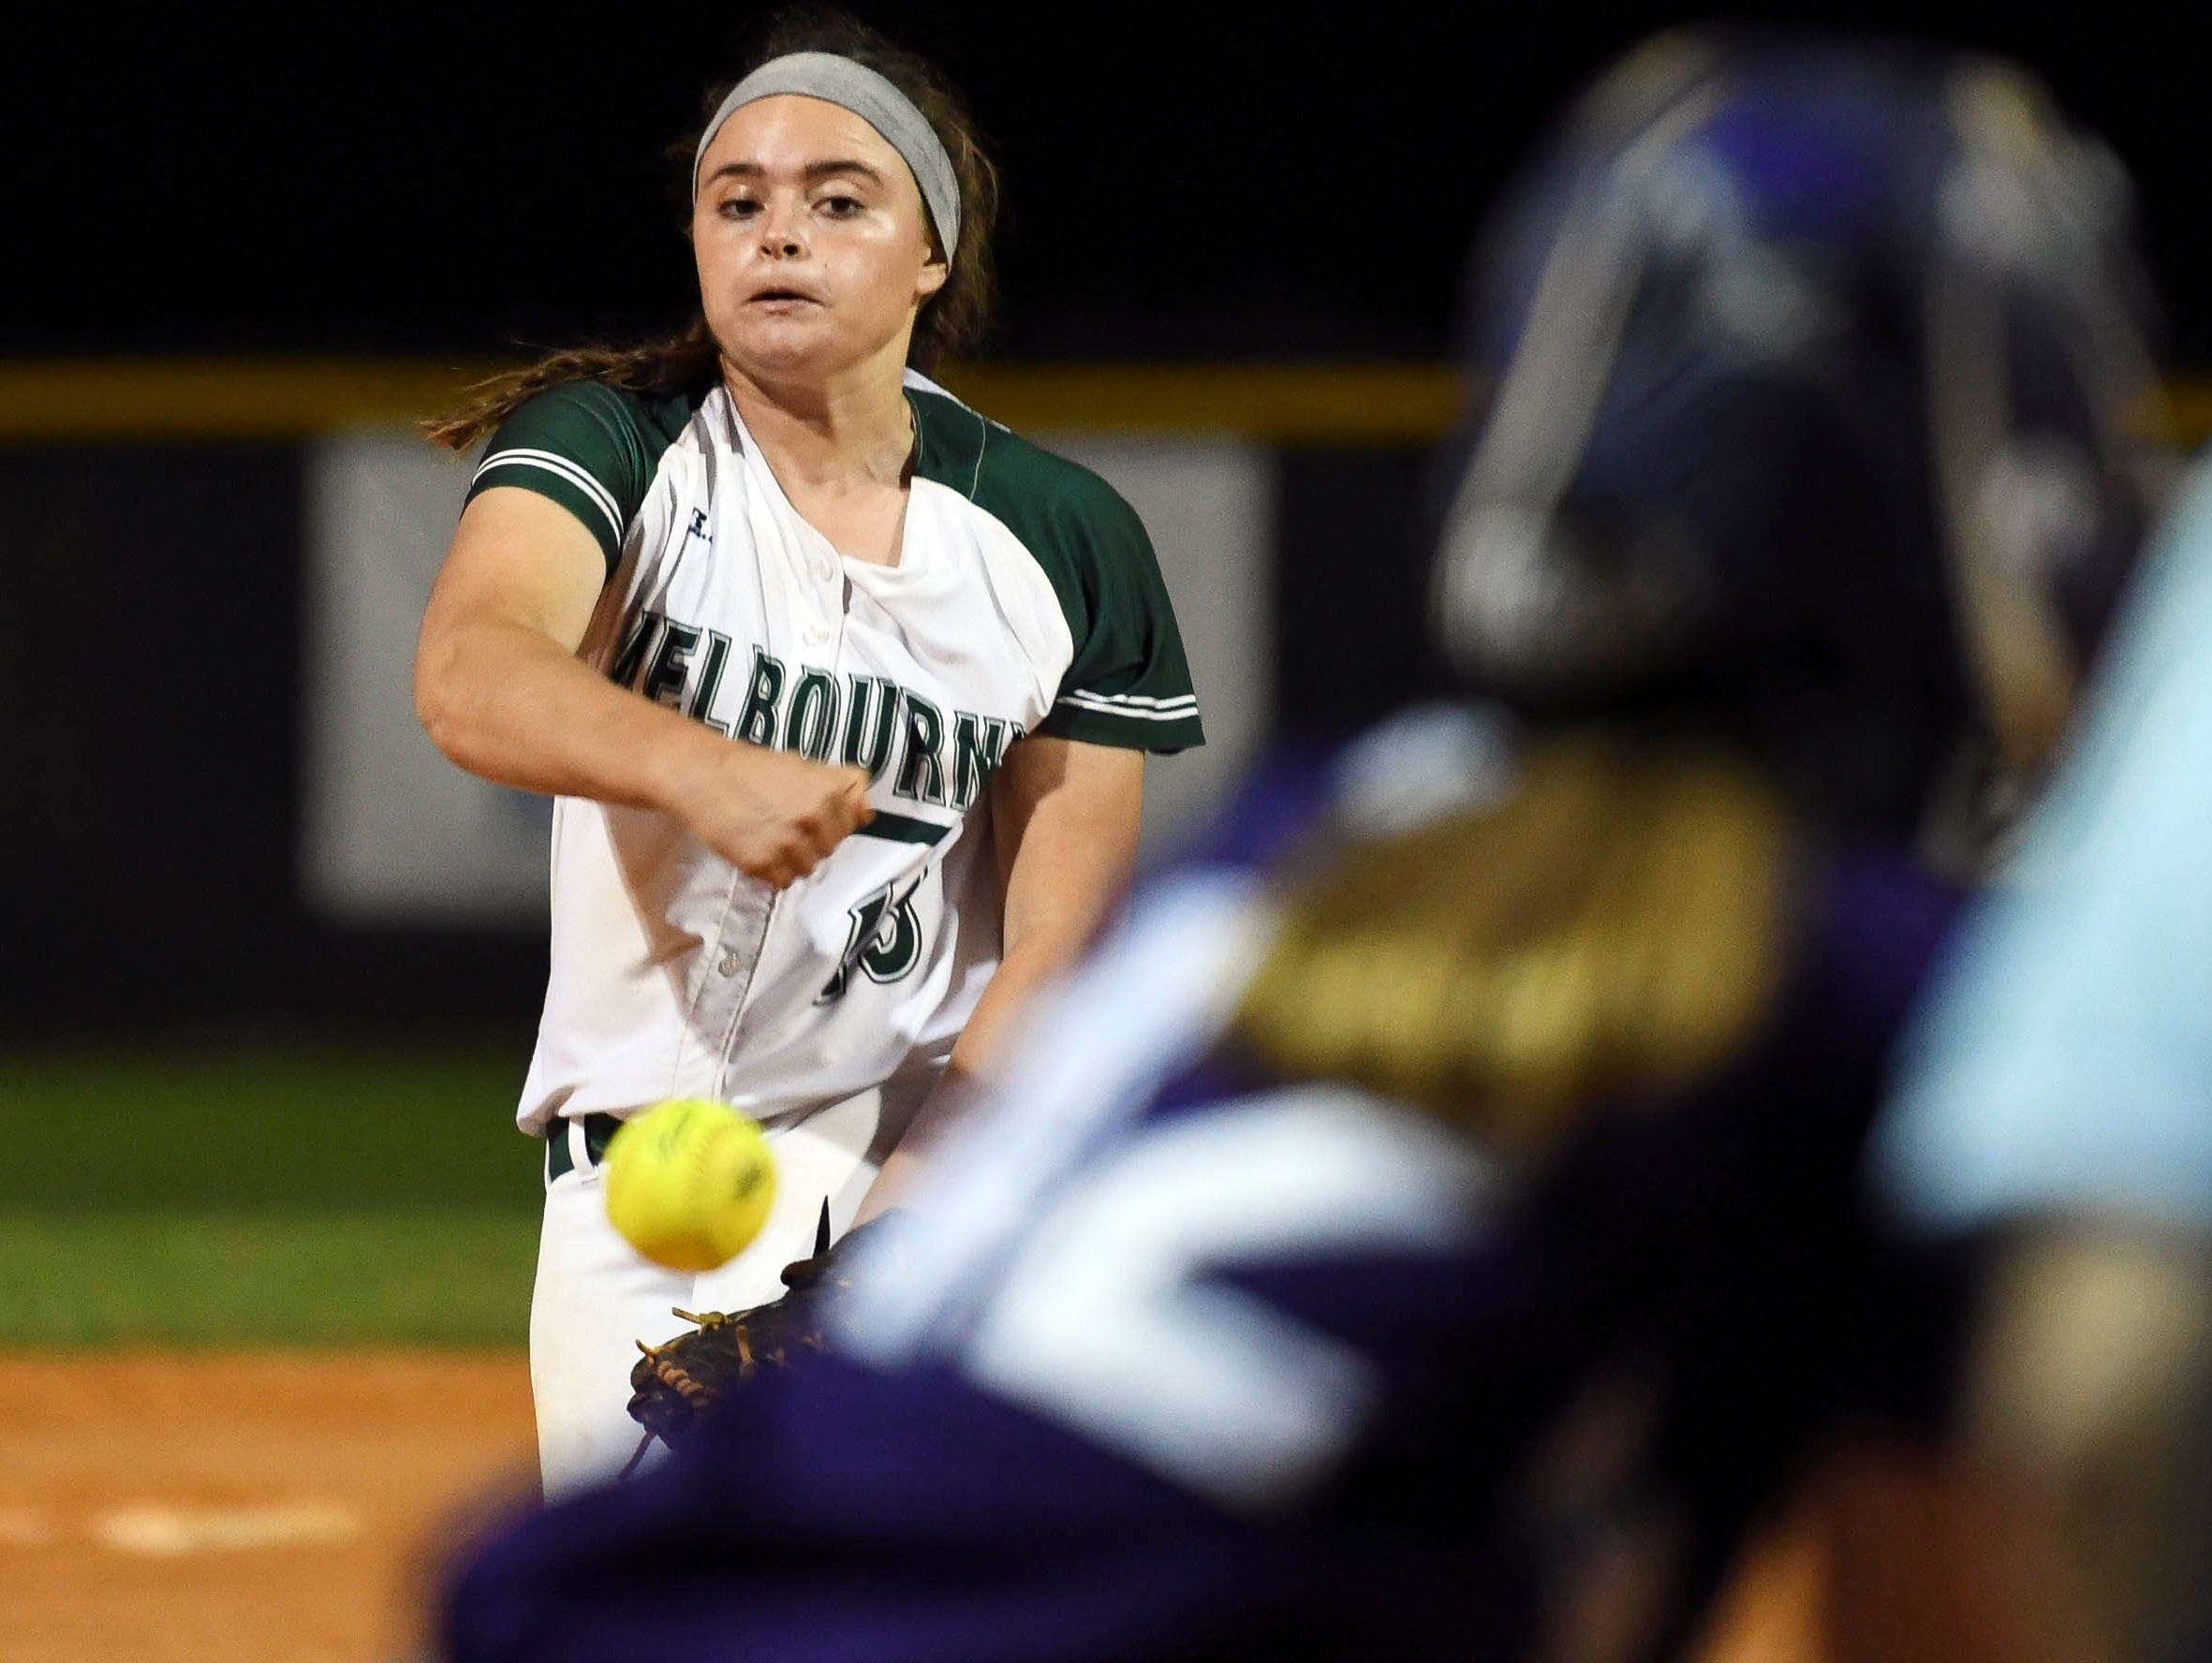 Melbourne's Gabby Lopresti pitches during Tuesday's game against Space Coast.